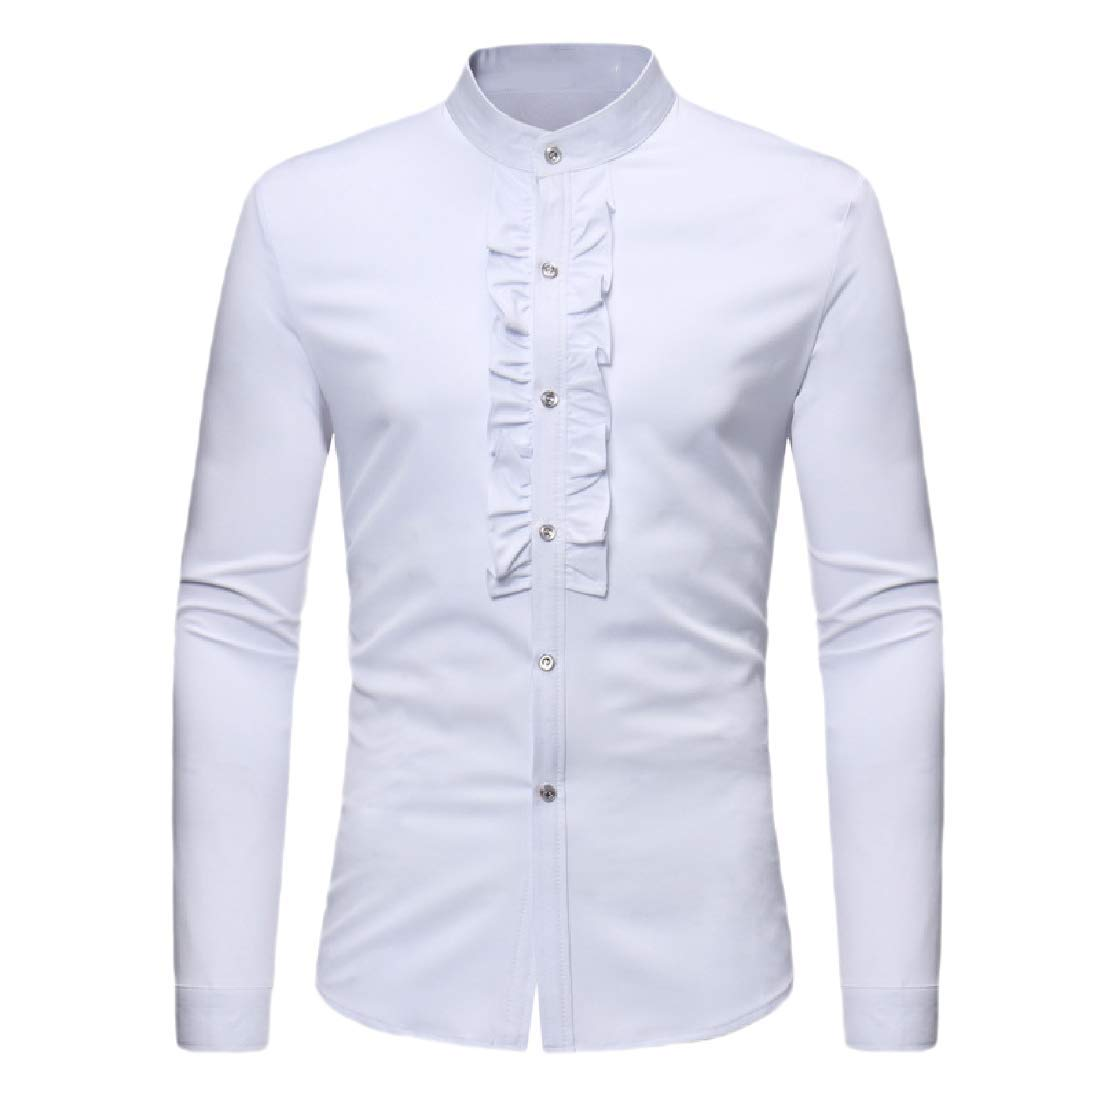 Zimaes-Men Solid Colored Long Sleeve Button Chinese Style Tops Shirts